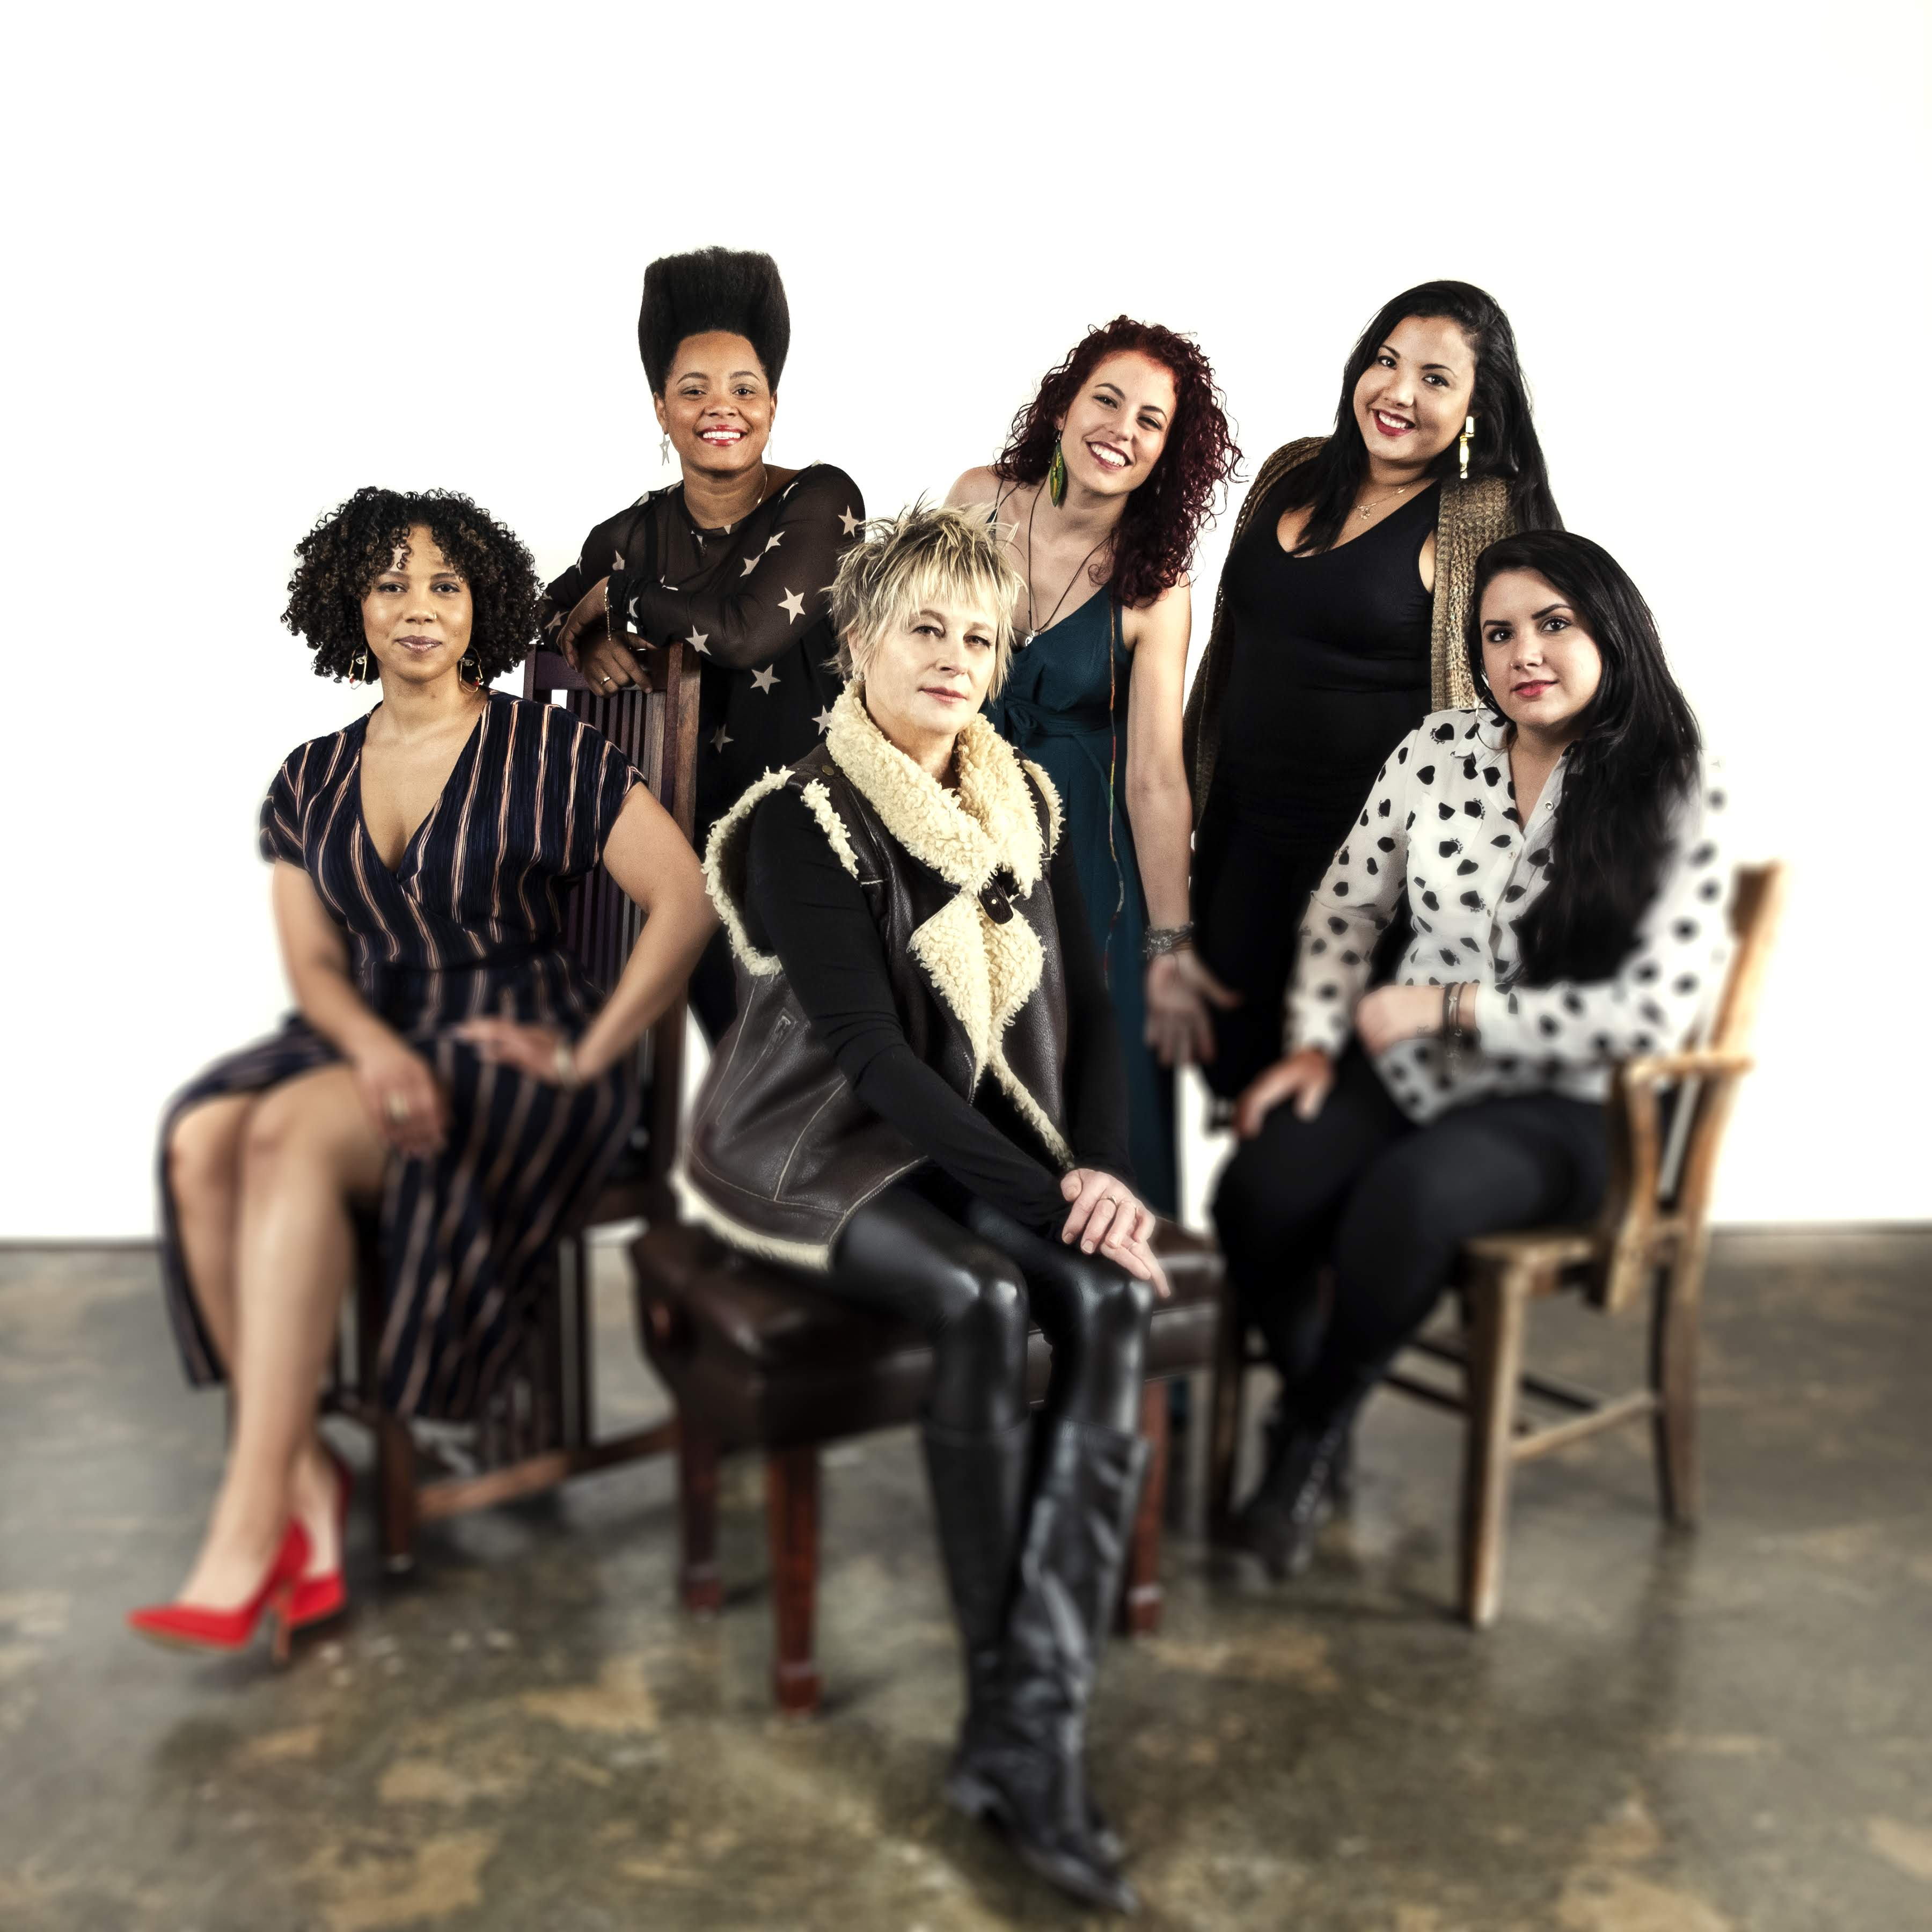 Jane Bunnett and Maqueque from the album On Firm Ground by Linus Entertainment and True North Records